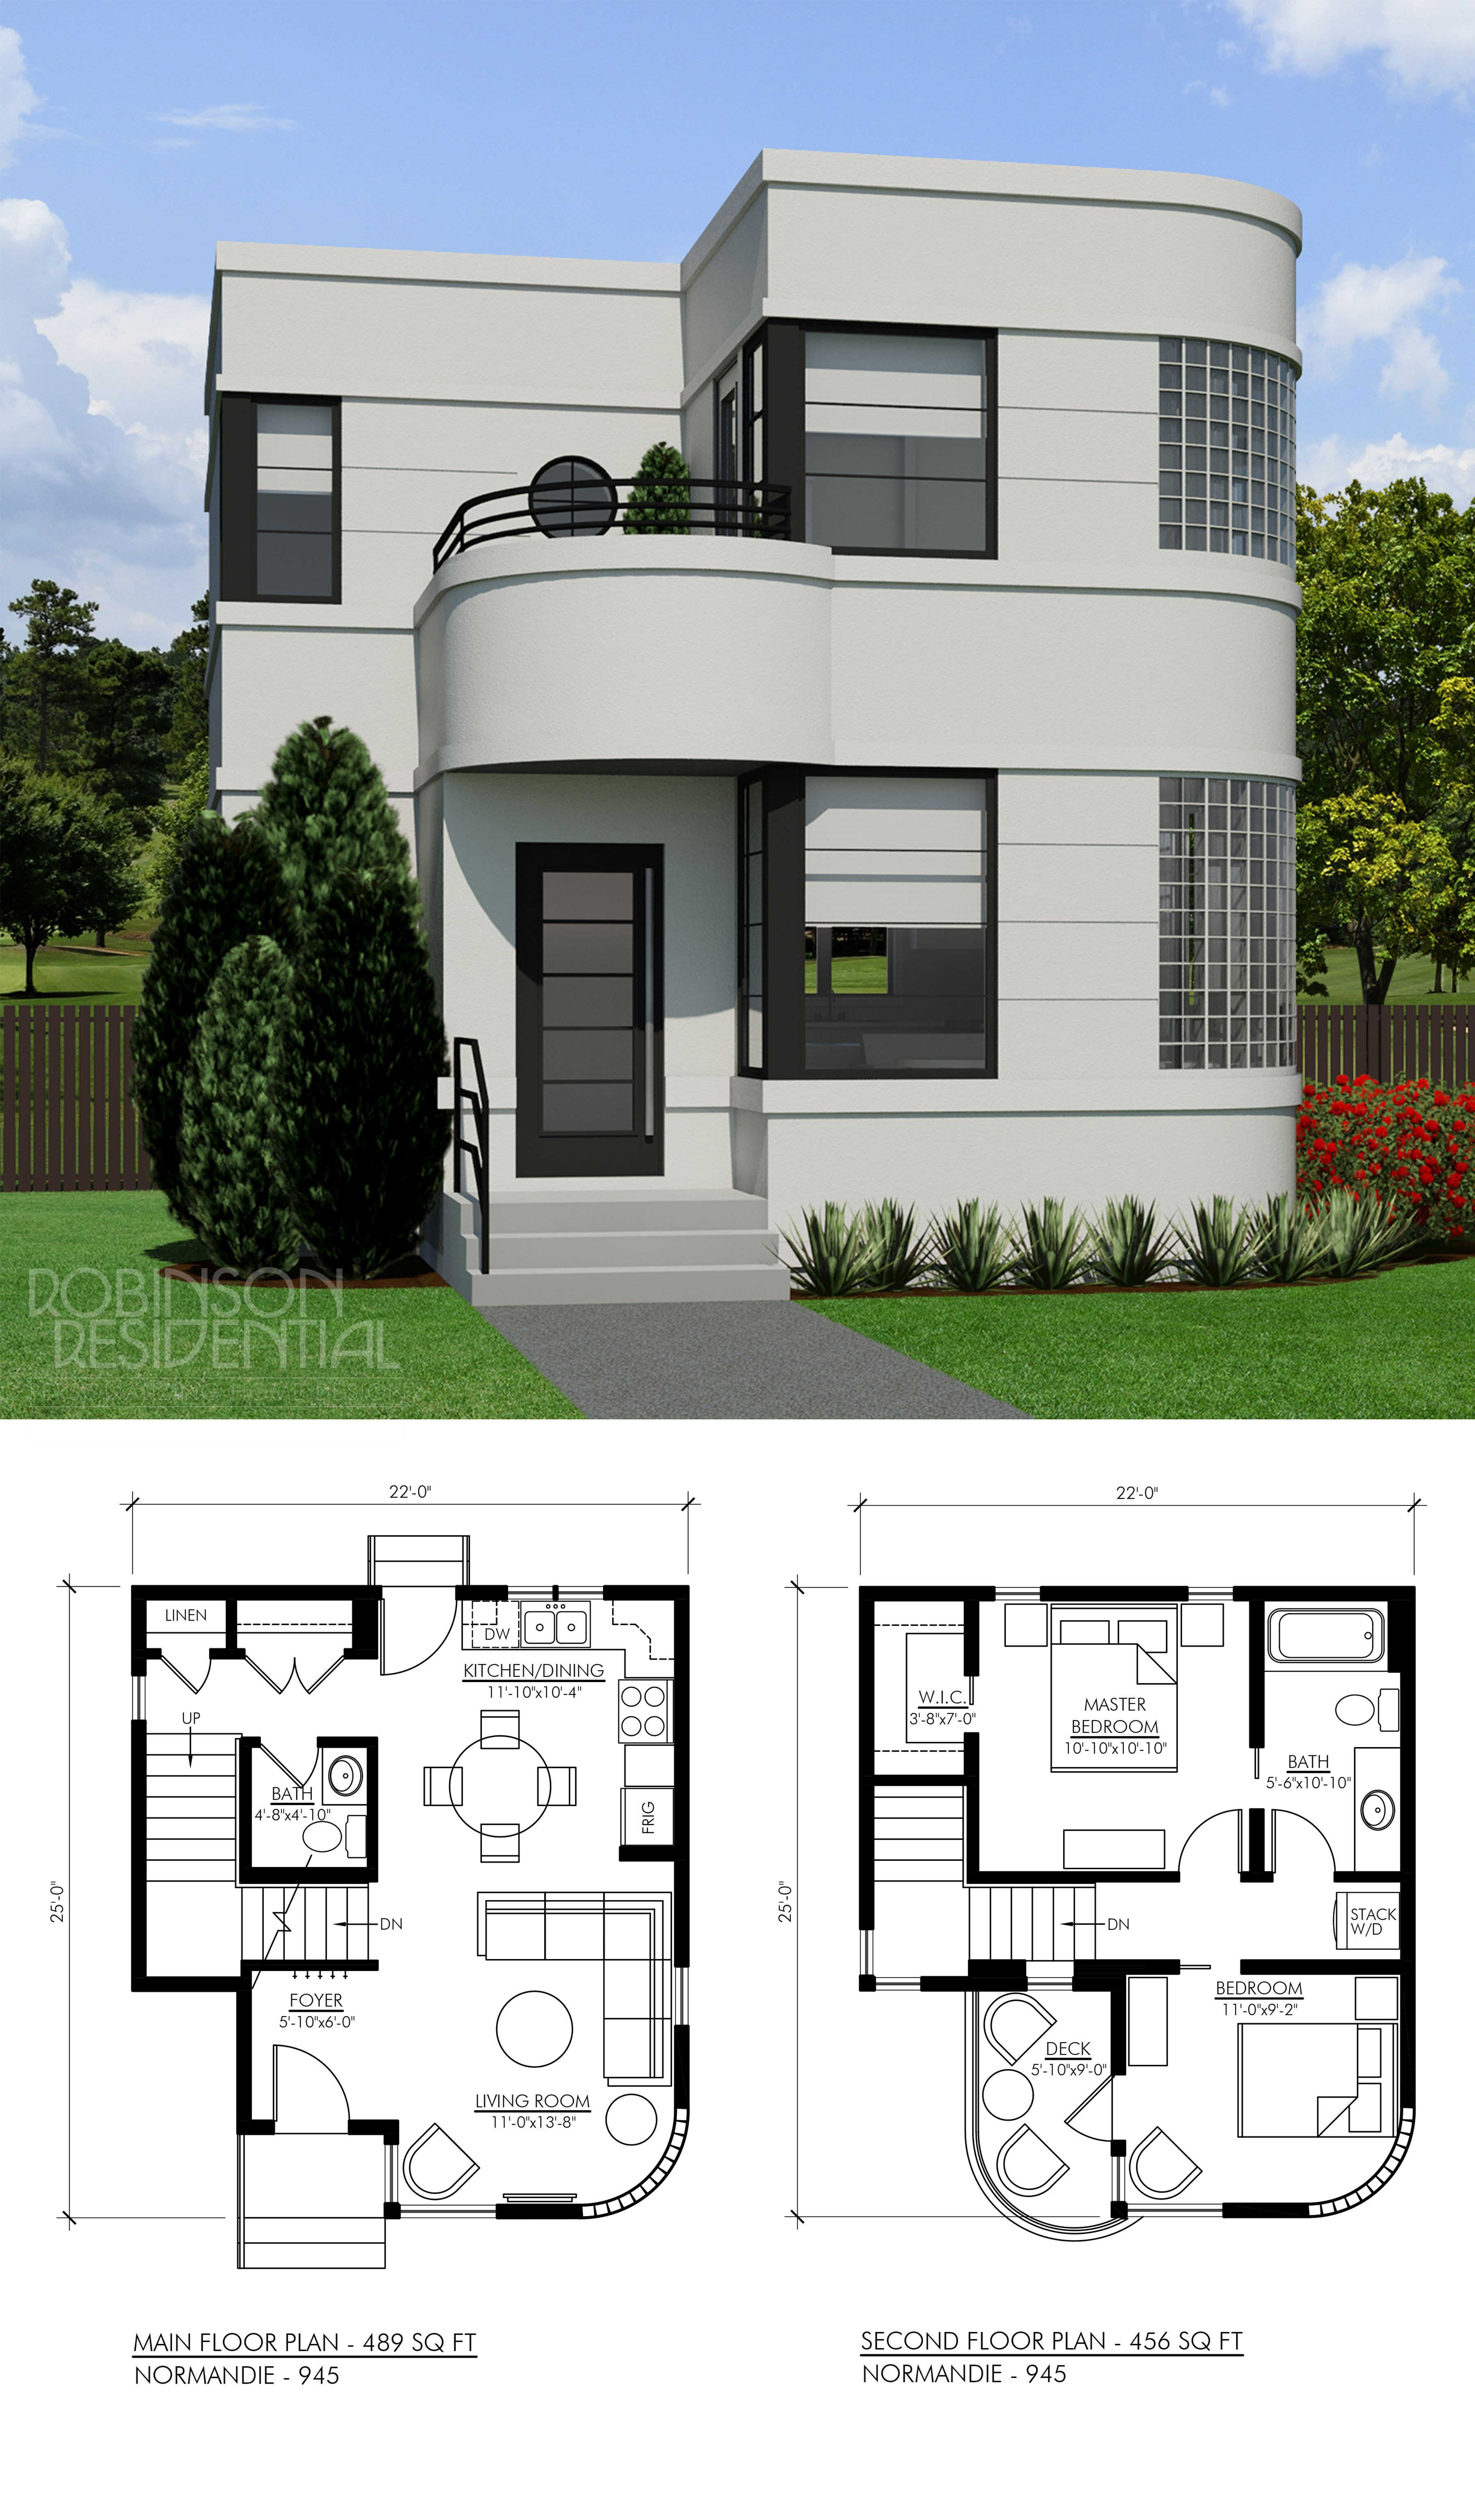 Modern Small House Plans Best Of Contemporary norman 945